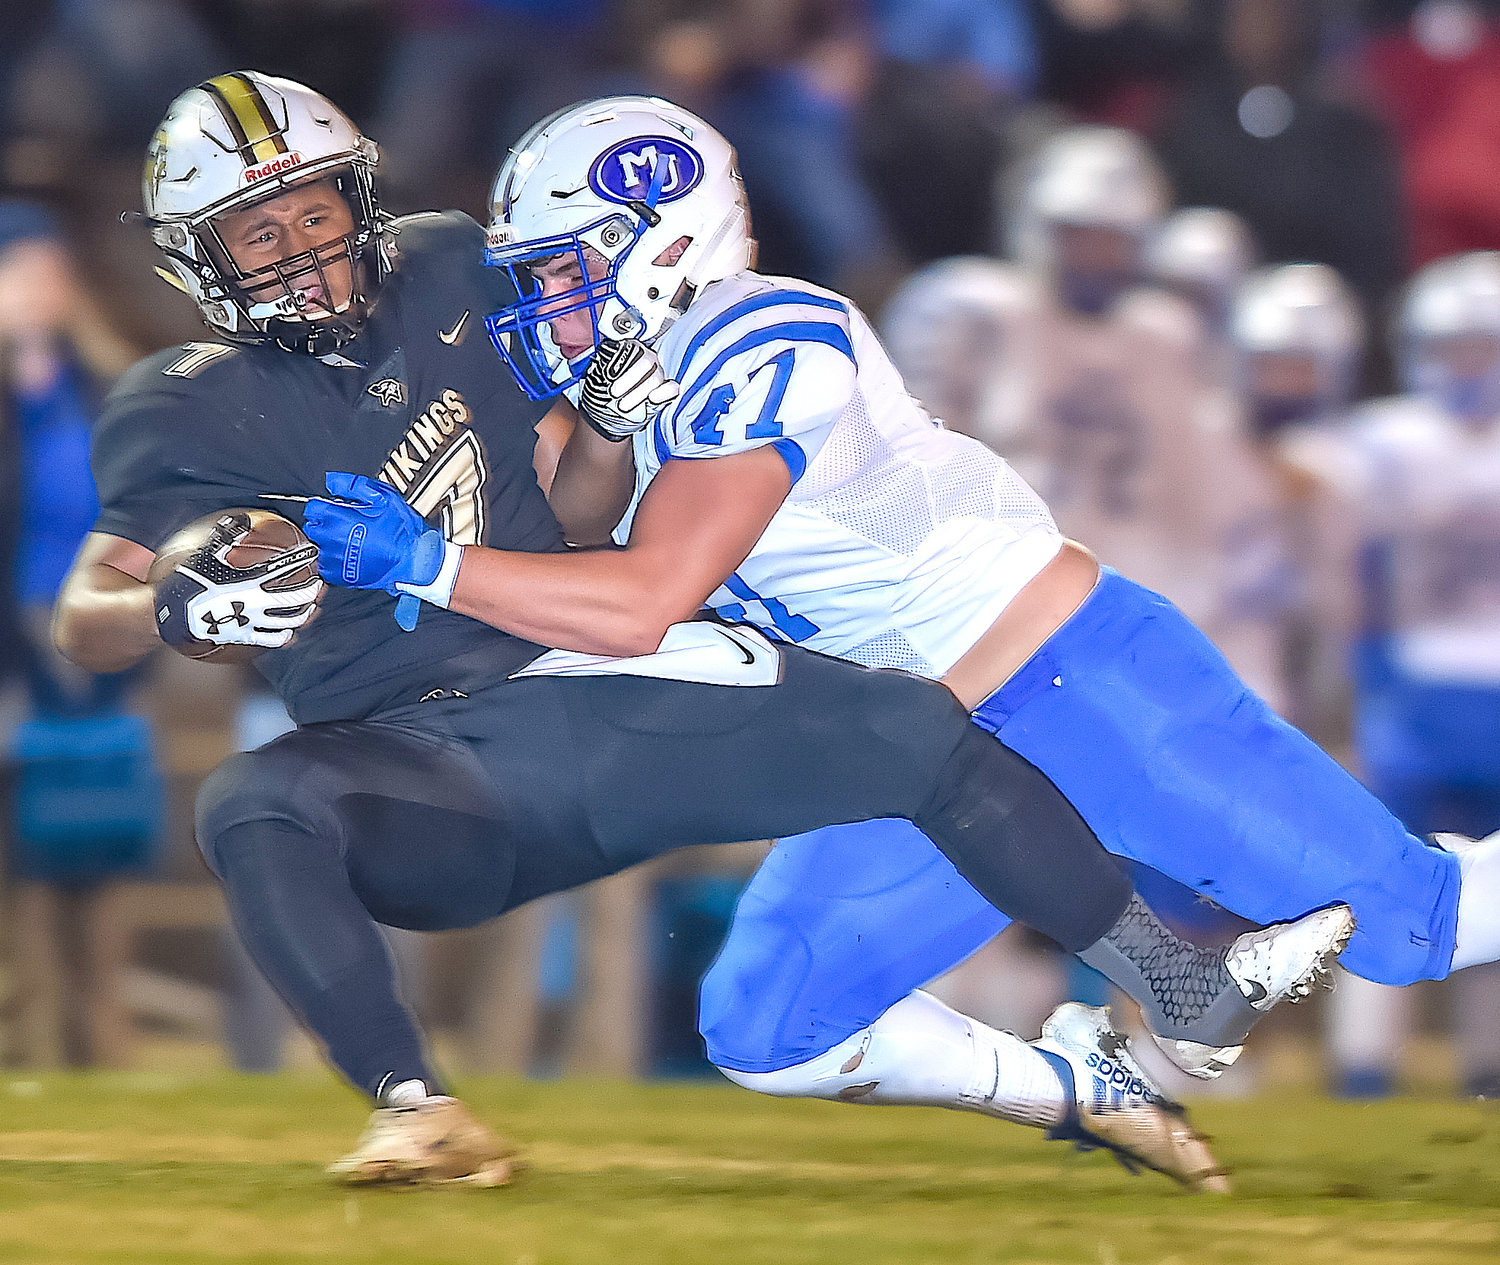 Jasper's Kaden Shelton is taken down by a Mortimer Jordan defender during Friday night's Class 5A quarterfinal game. The Blue Devils eliminated the Vikings from the playoffs in a 41-21 win.